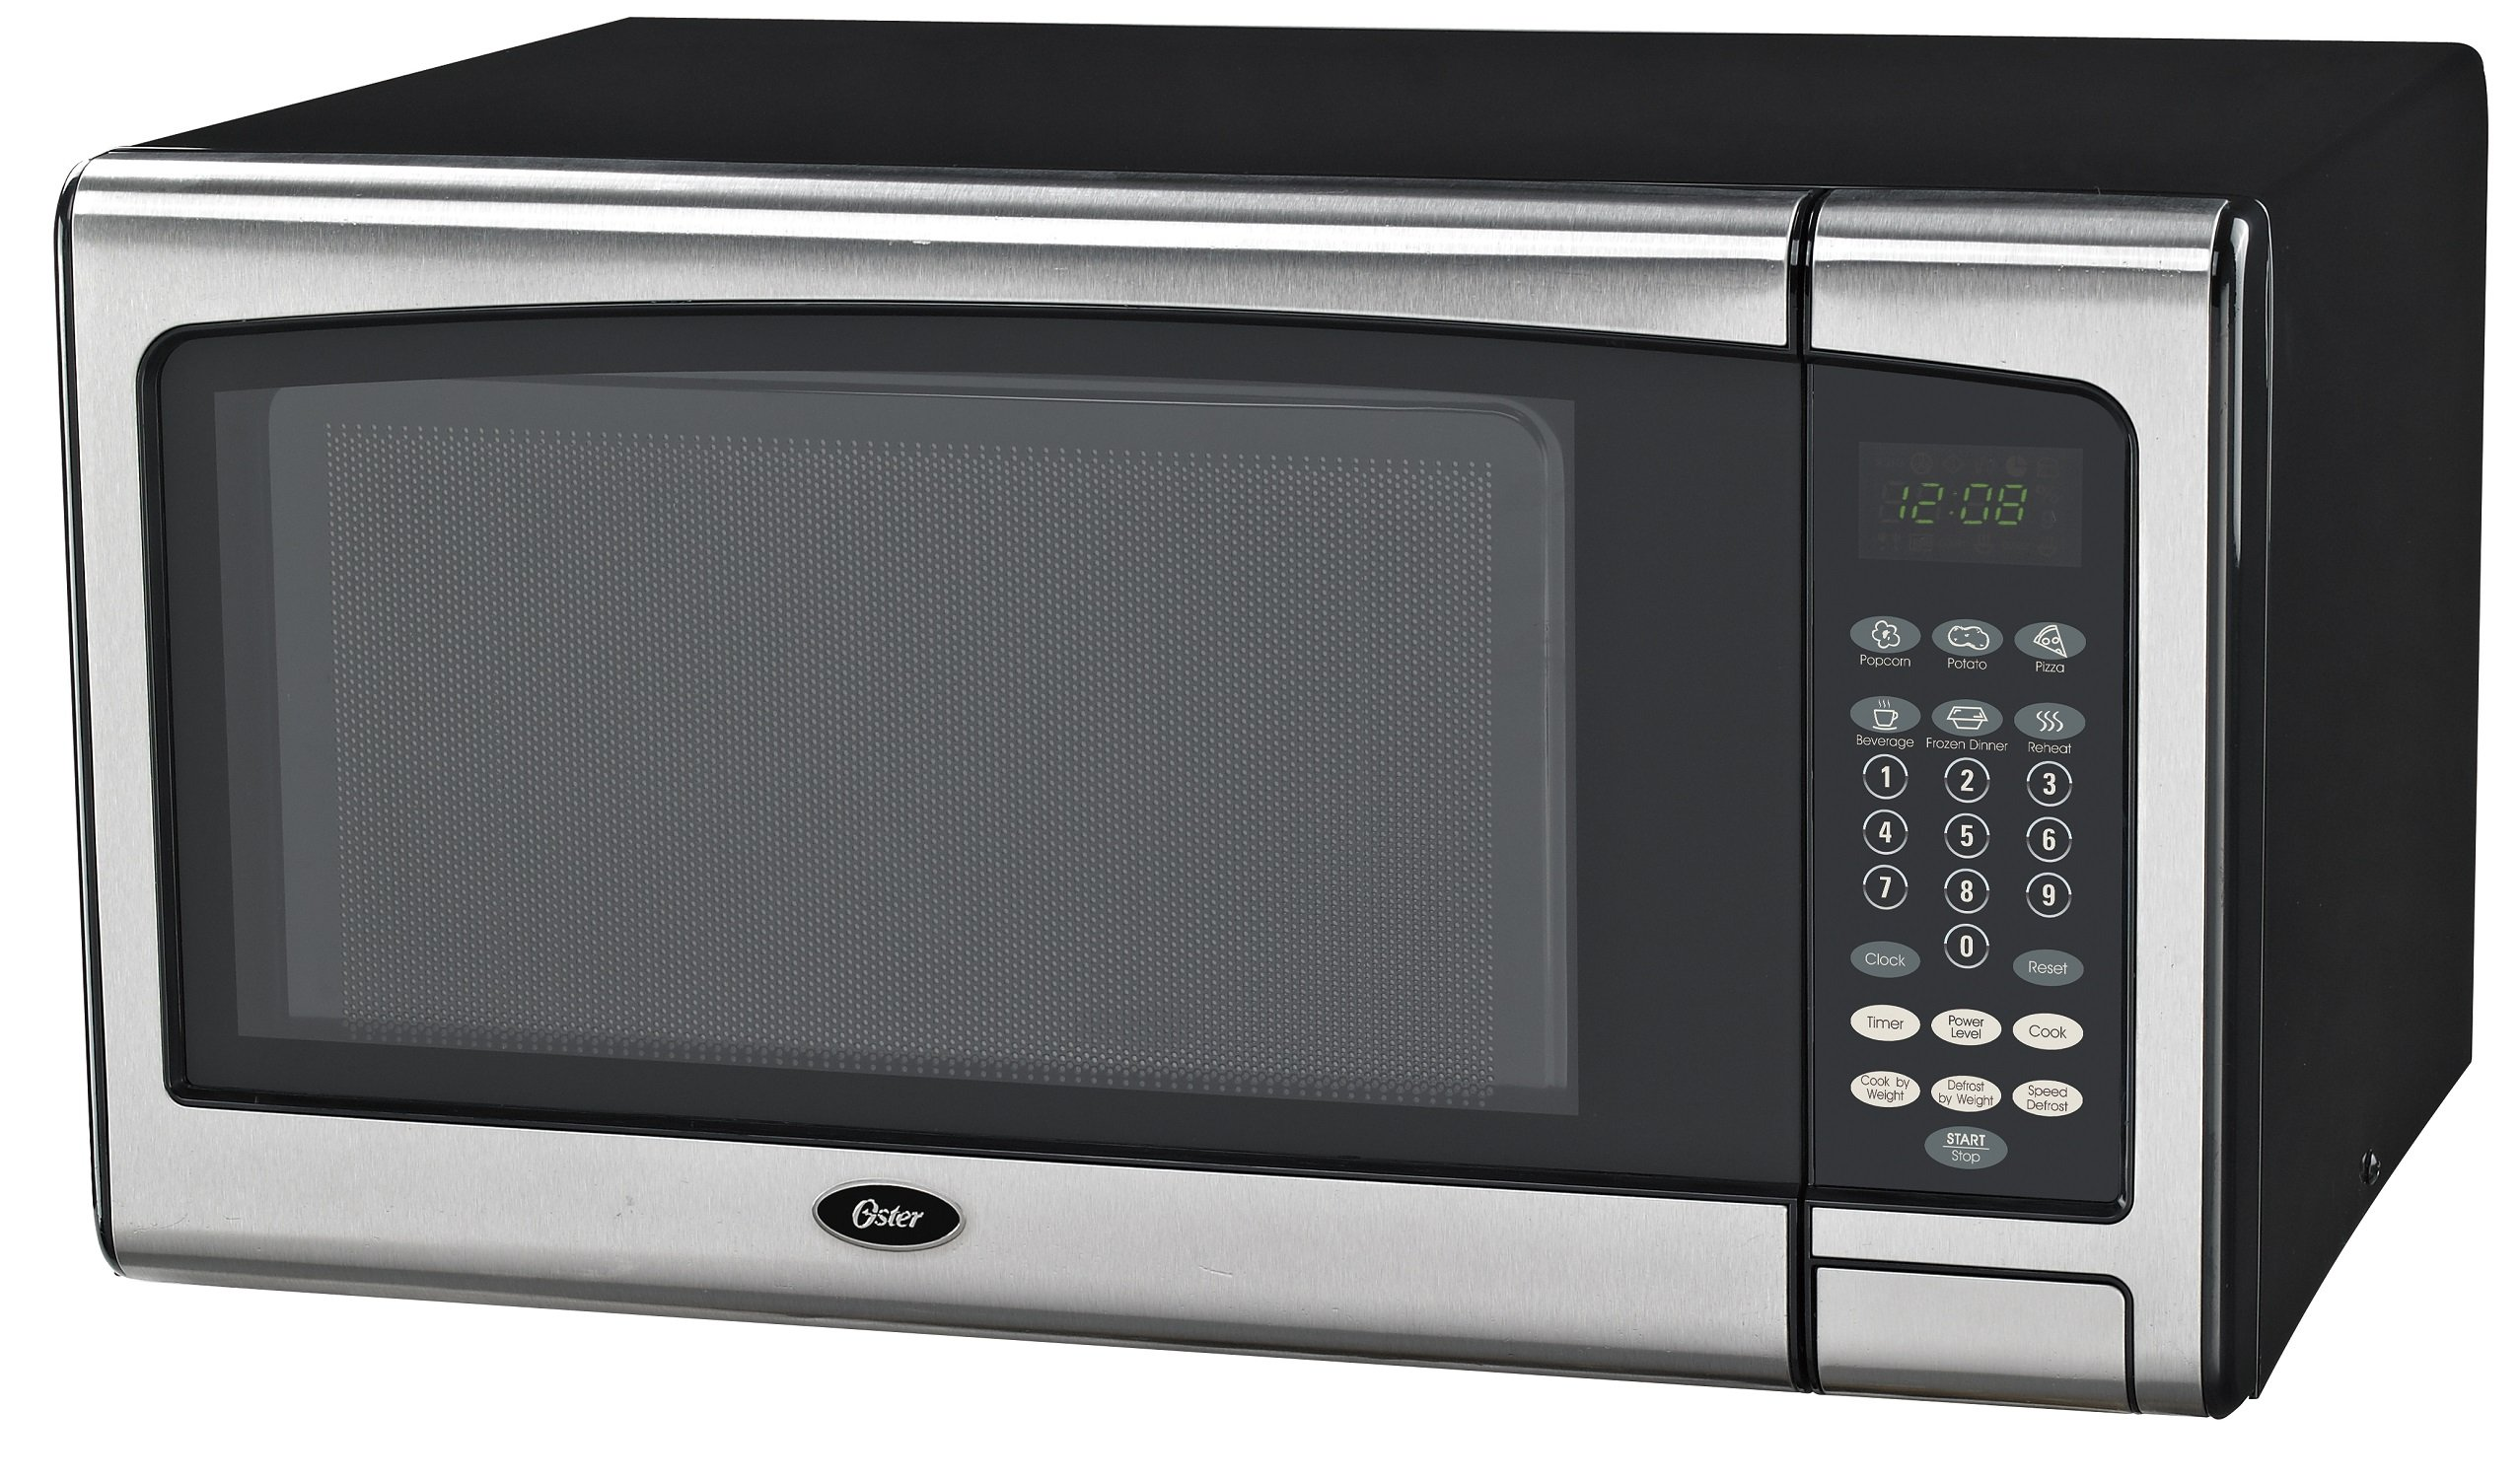 Oster OGSMJ411S2-10 1.1 cu. Ft. Microwave Oven, Stainless Steel by Oster (Image #1)